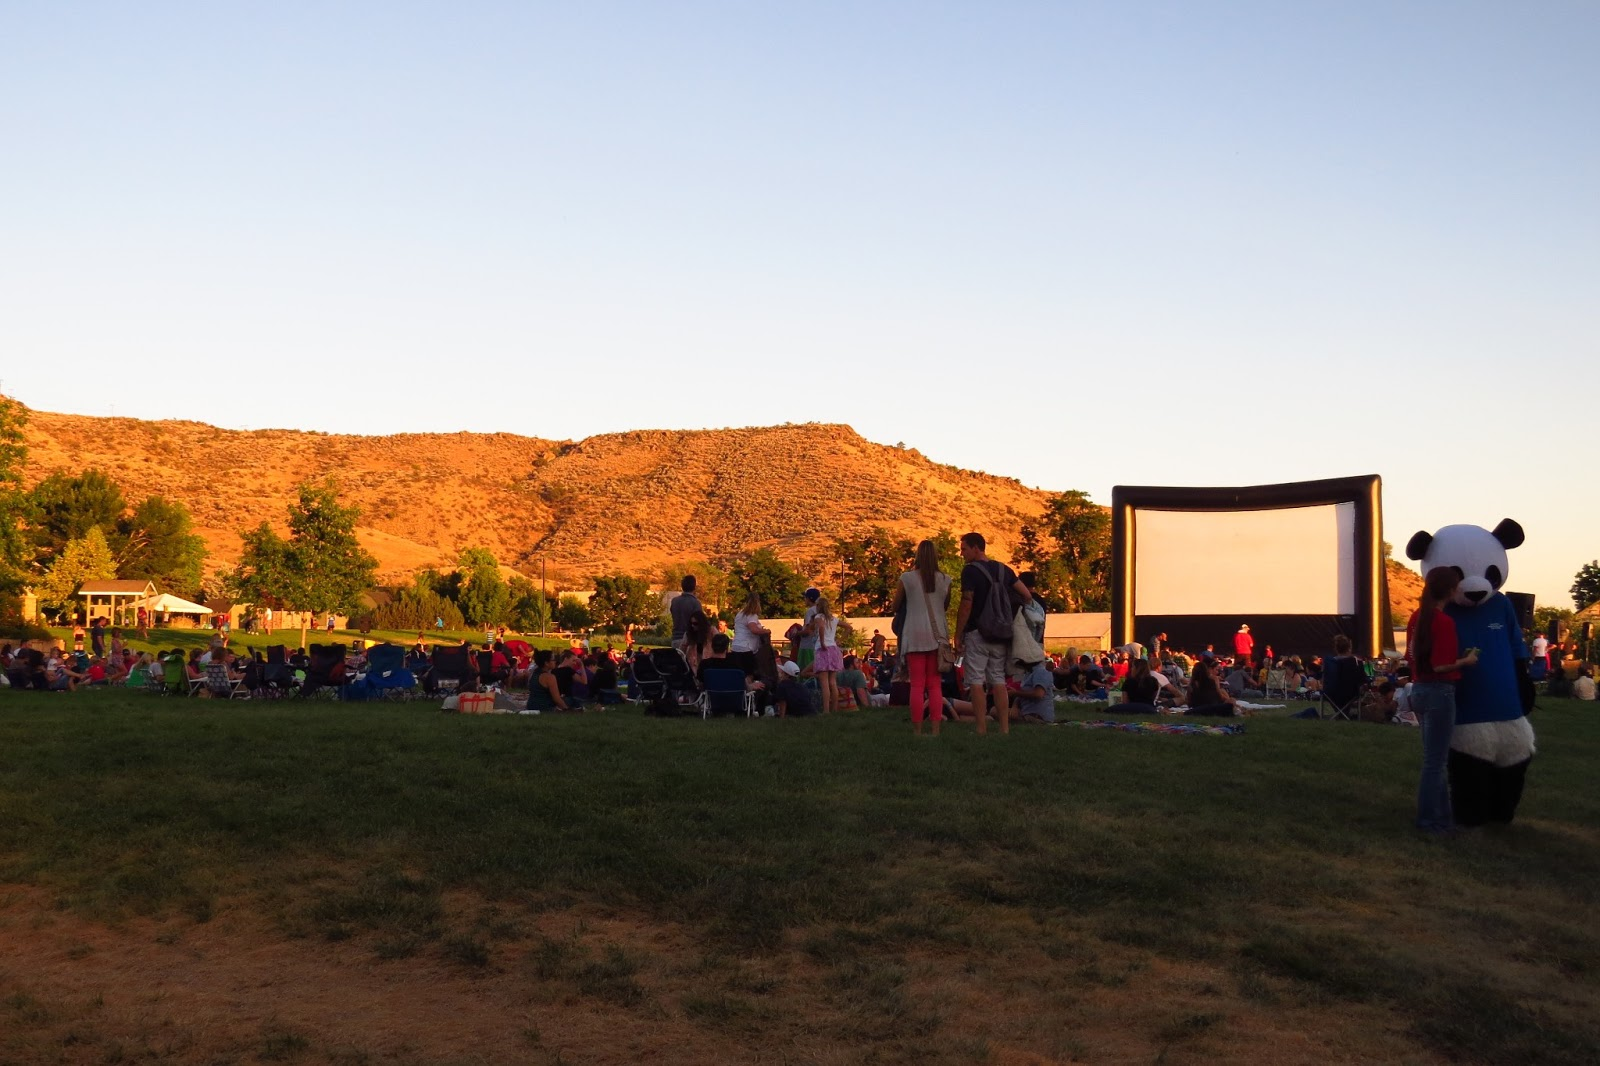 Idaho Botanical Garden Movies in the Garden